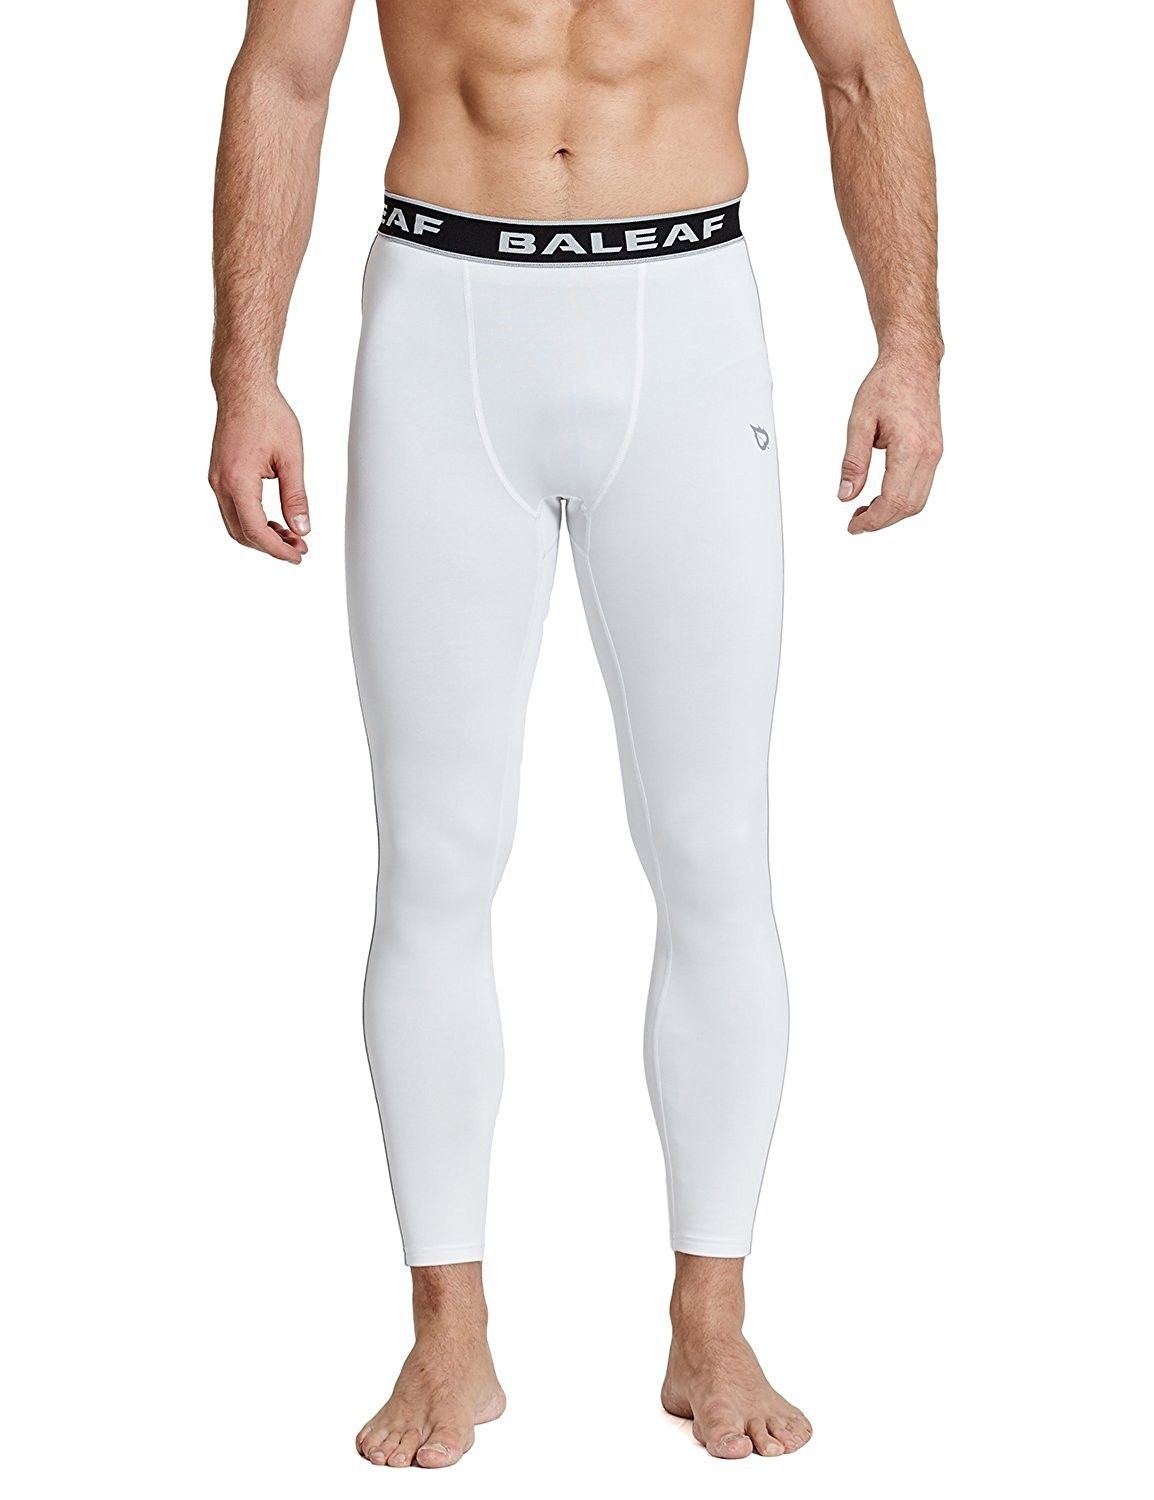 b4f0a0511c3f6 Men's Clothing, Active, Active Pants, Men's Thermal Compression Baselayer  Tights Fleece Lined Pants - White/Gray - CK1883S432N #men #fashion  #clothing ...